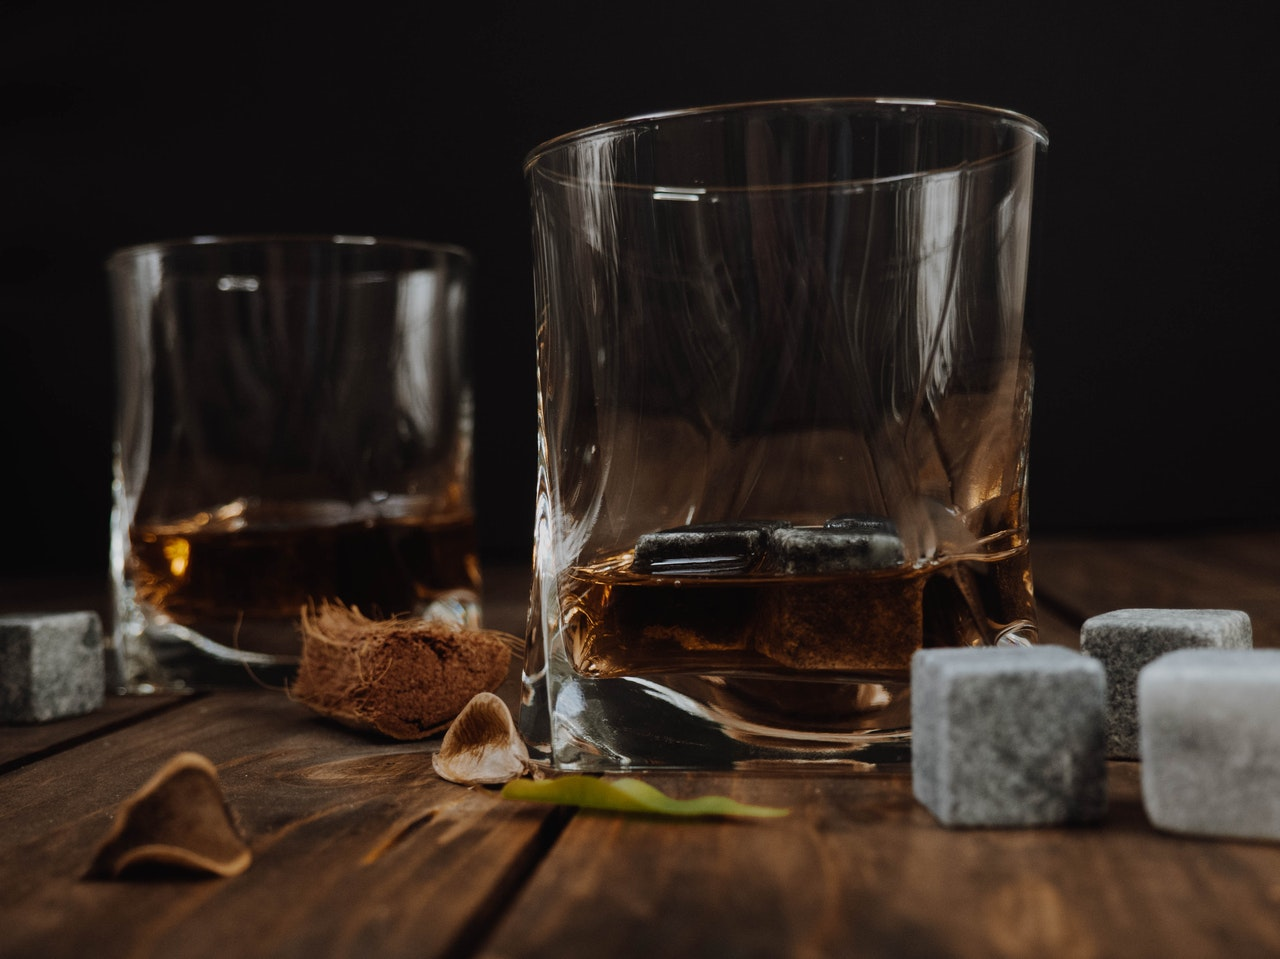 a photo of 2 glasses of Scotch whisky